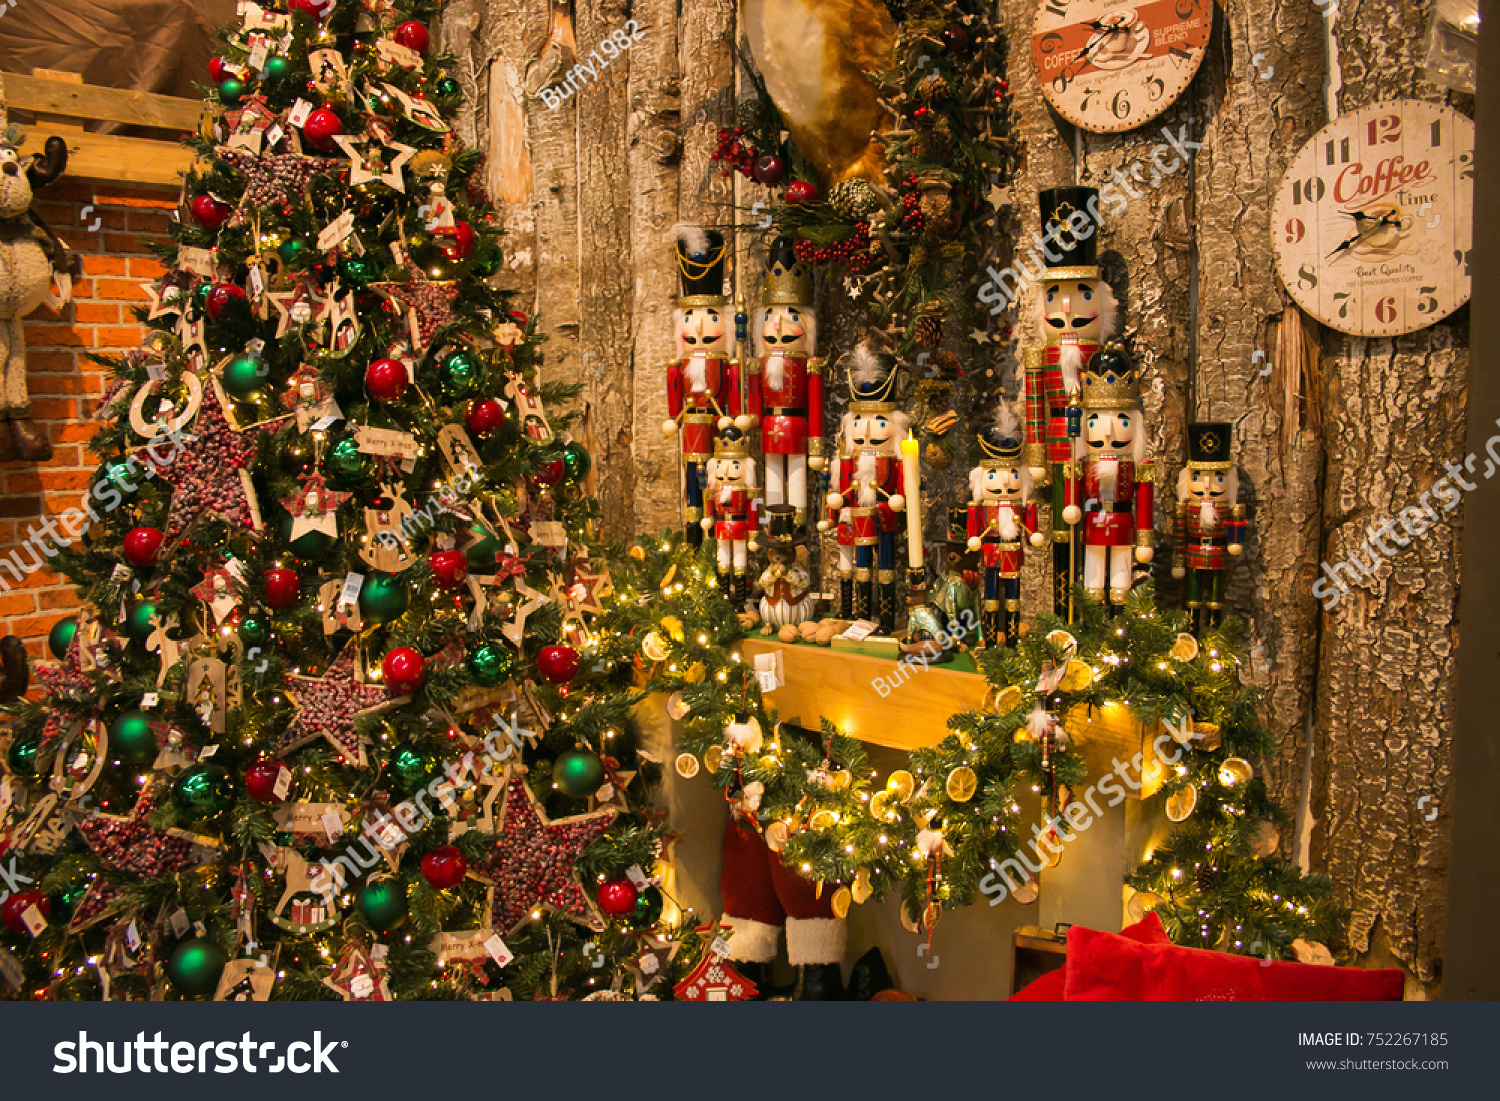 arezzo italy november 10 2017 christmas tree and fireplace with decorations at